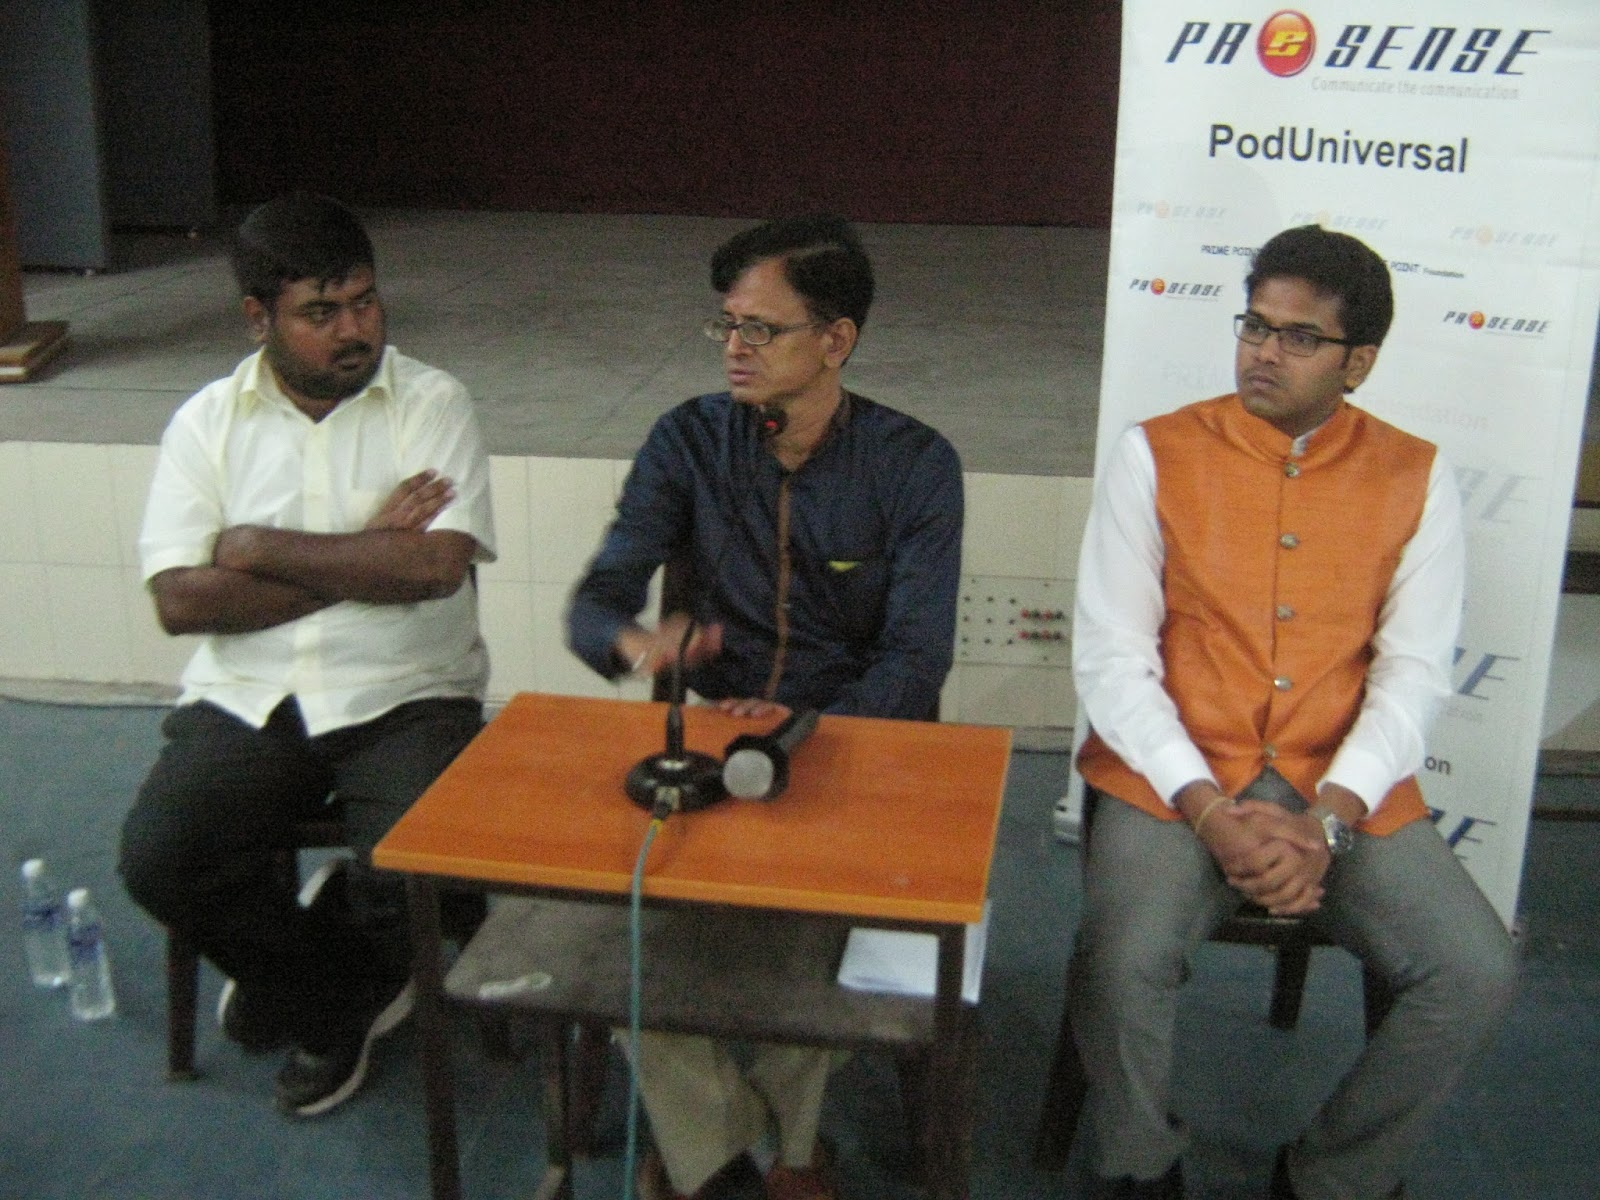 L to R : Kumar Rajendran, Srinivasa Prabhu and Prithvi